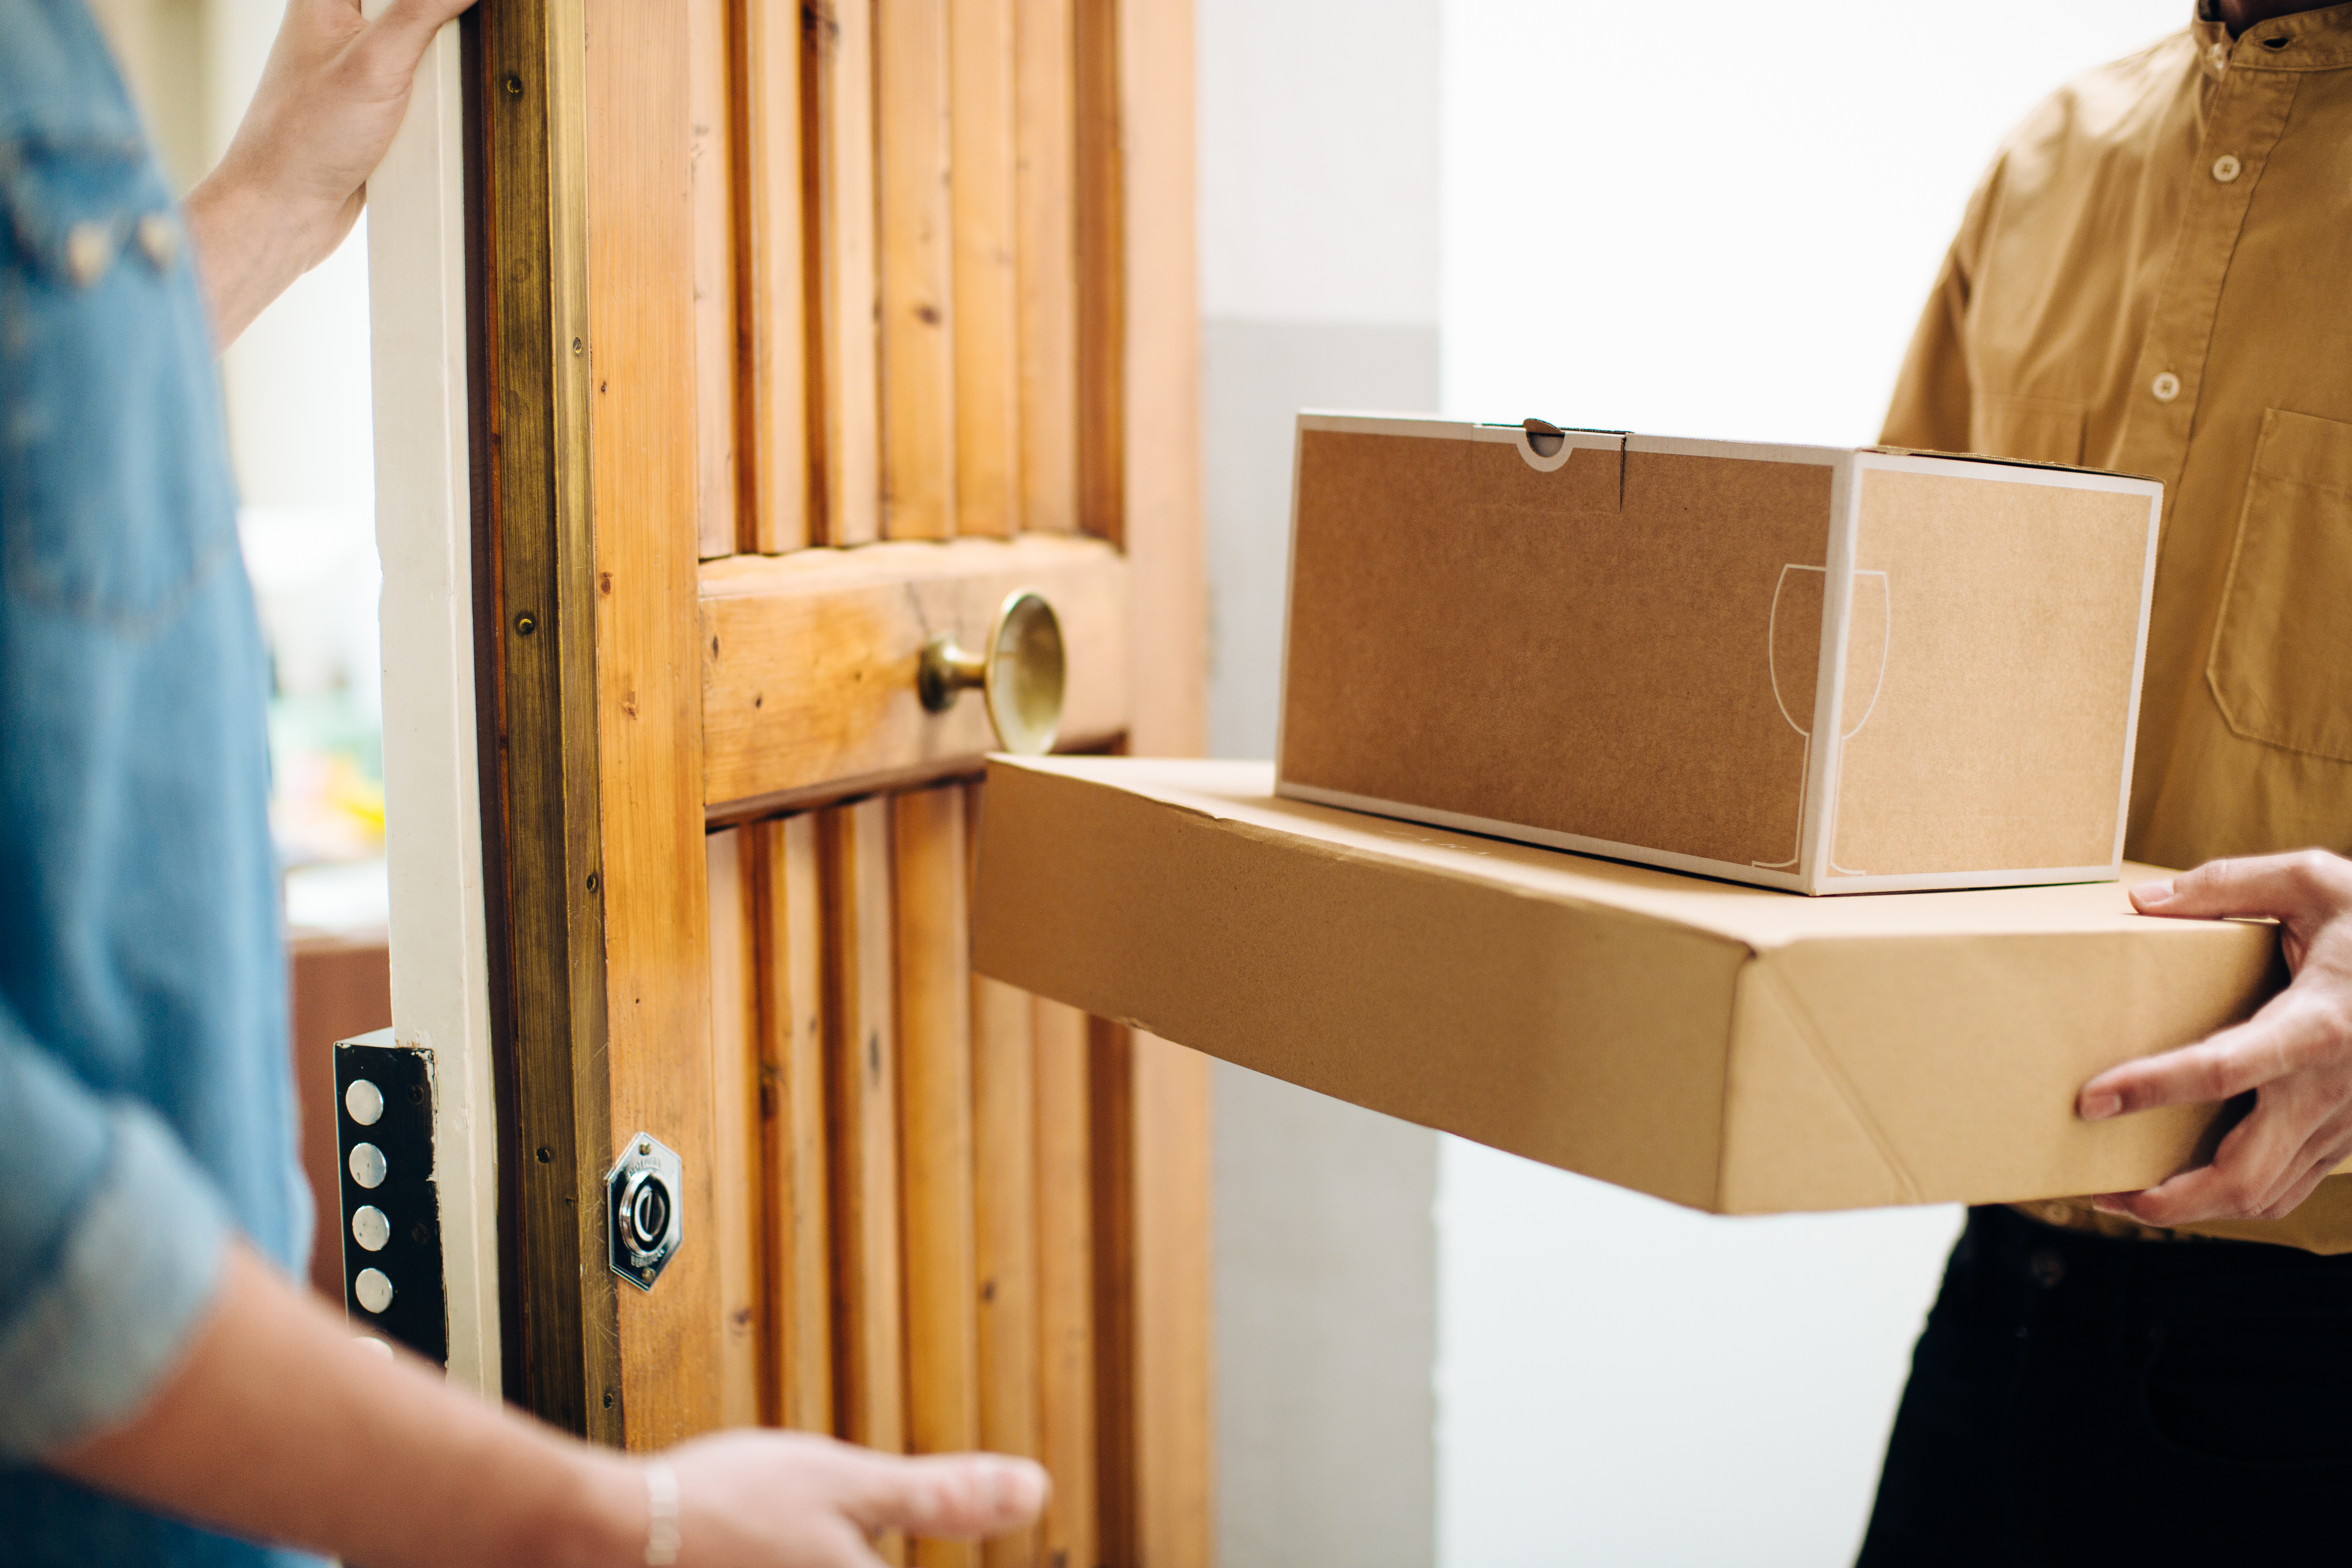 How To Refuse A Fedex Package